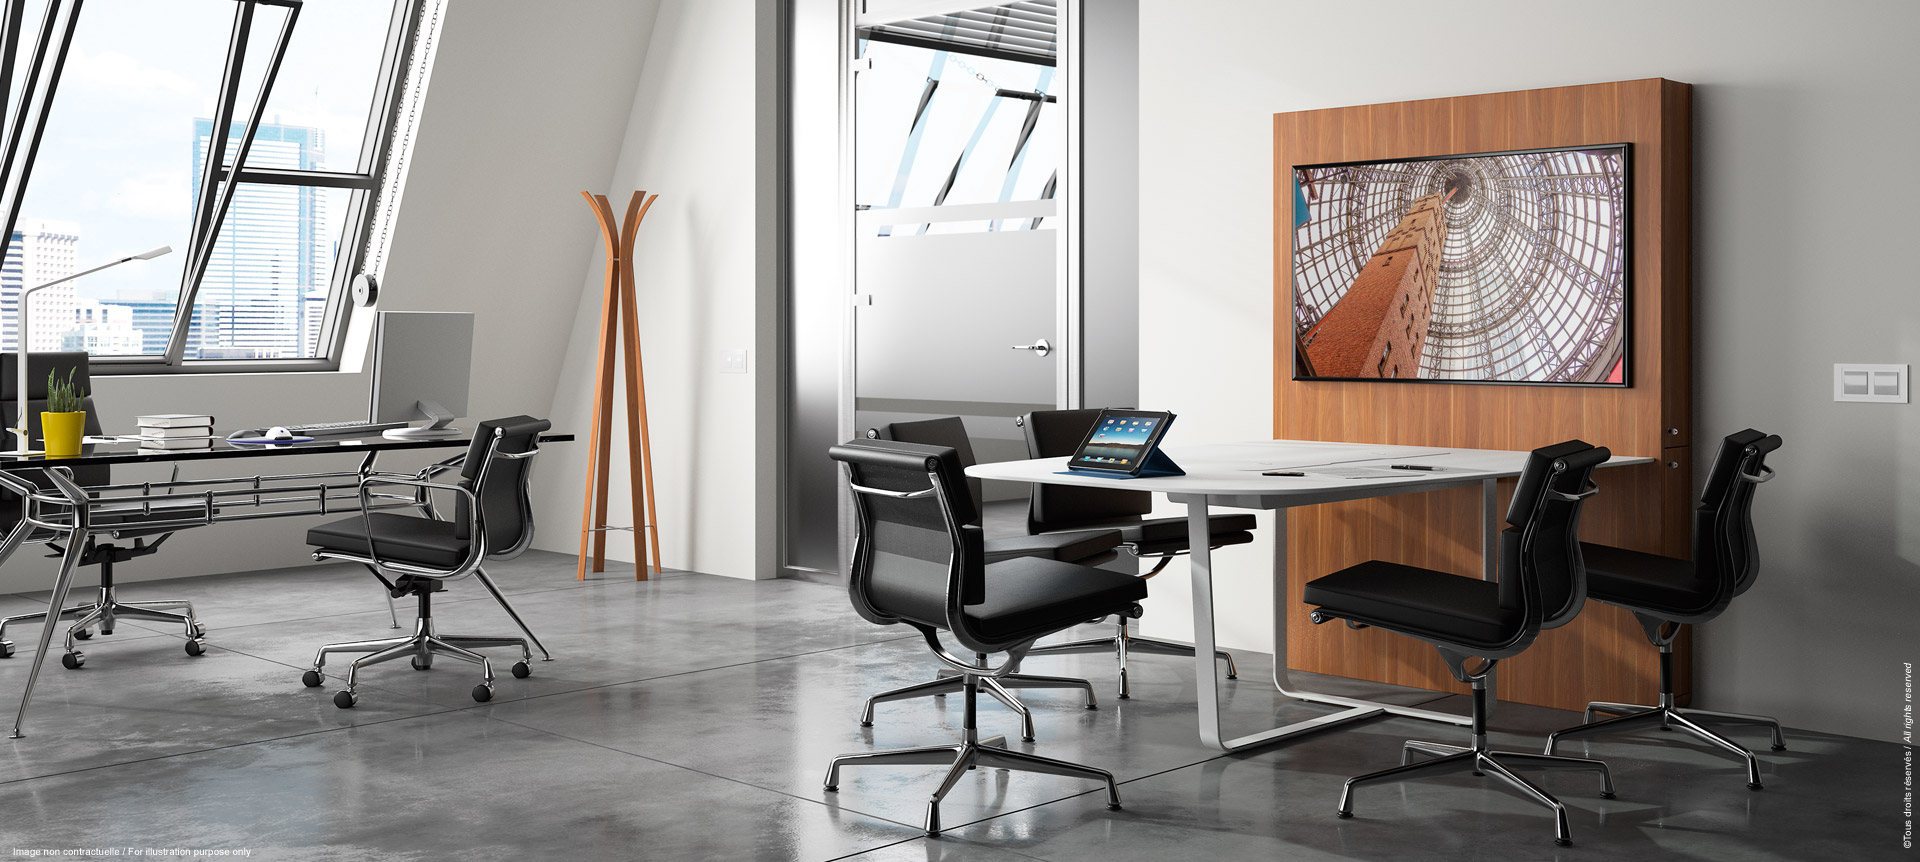 WEMEET SHARE FIXED - Versatile meeting table for collaborative work with screen